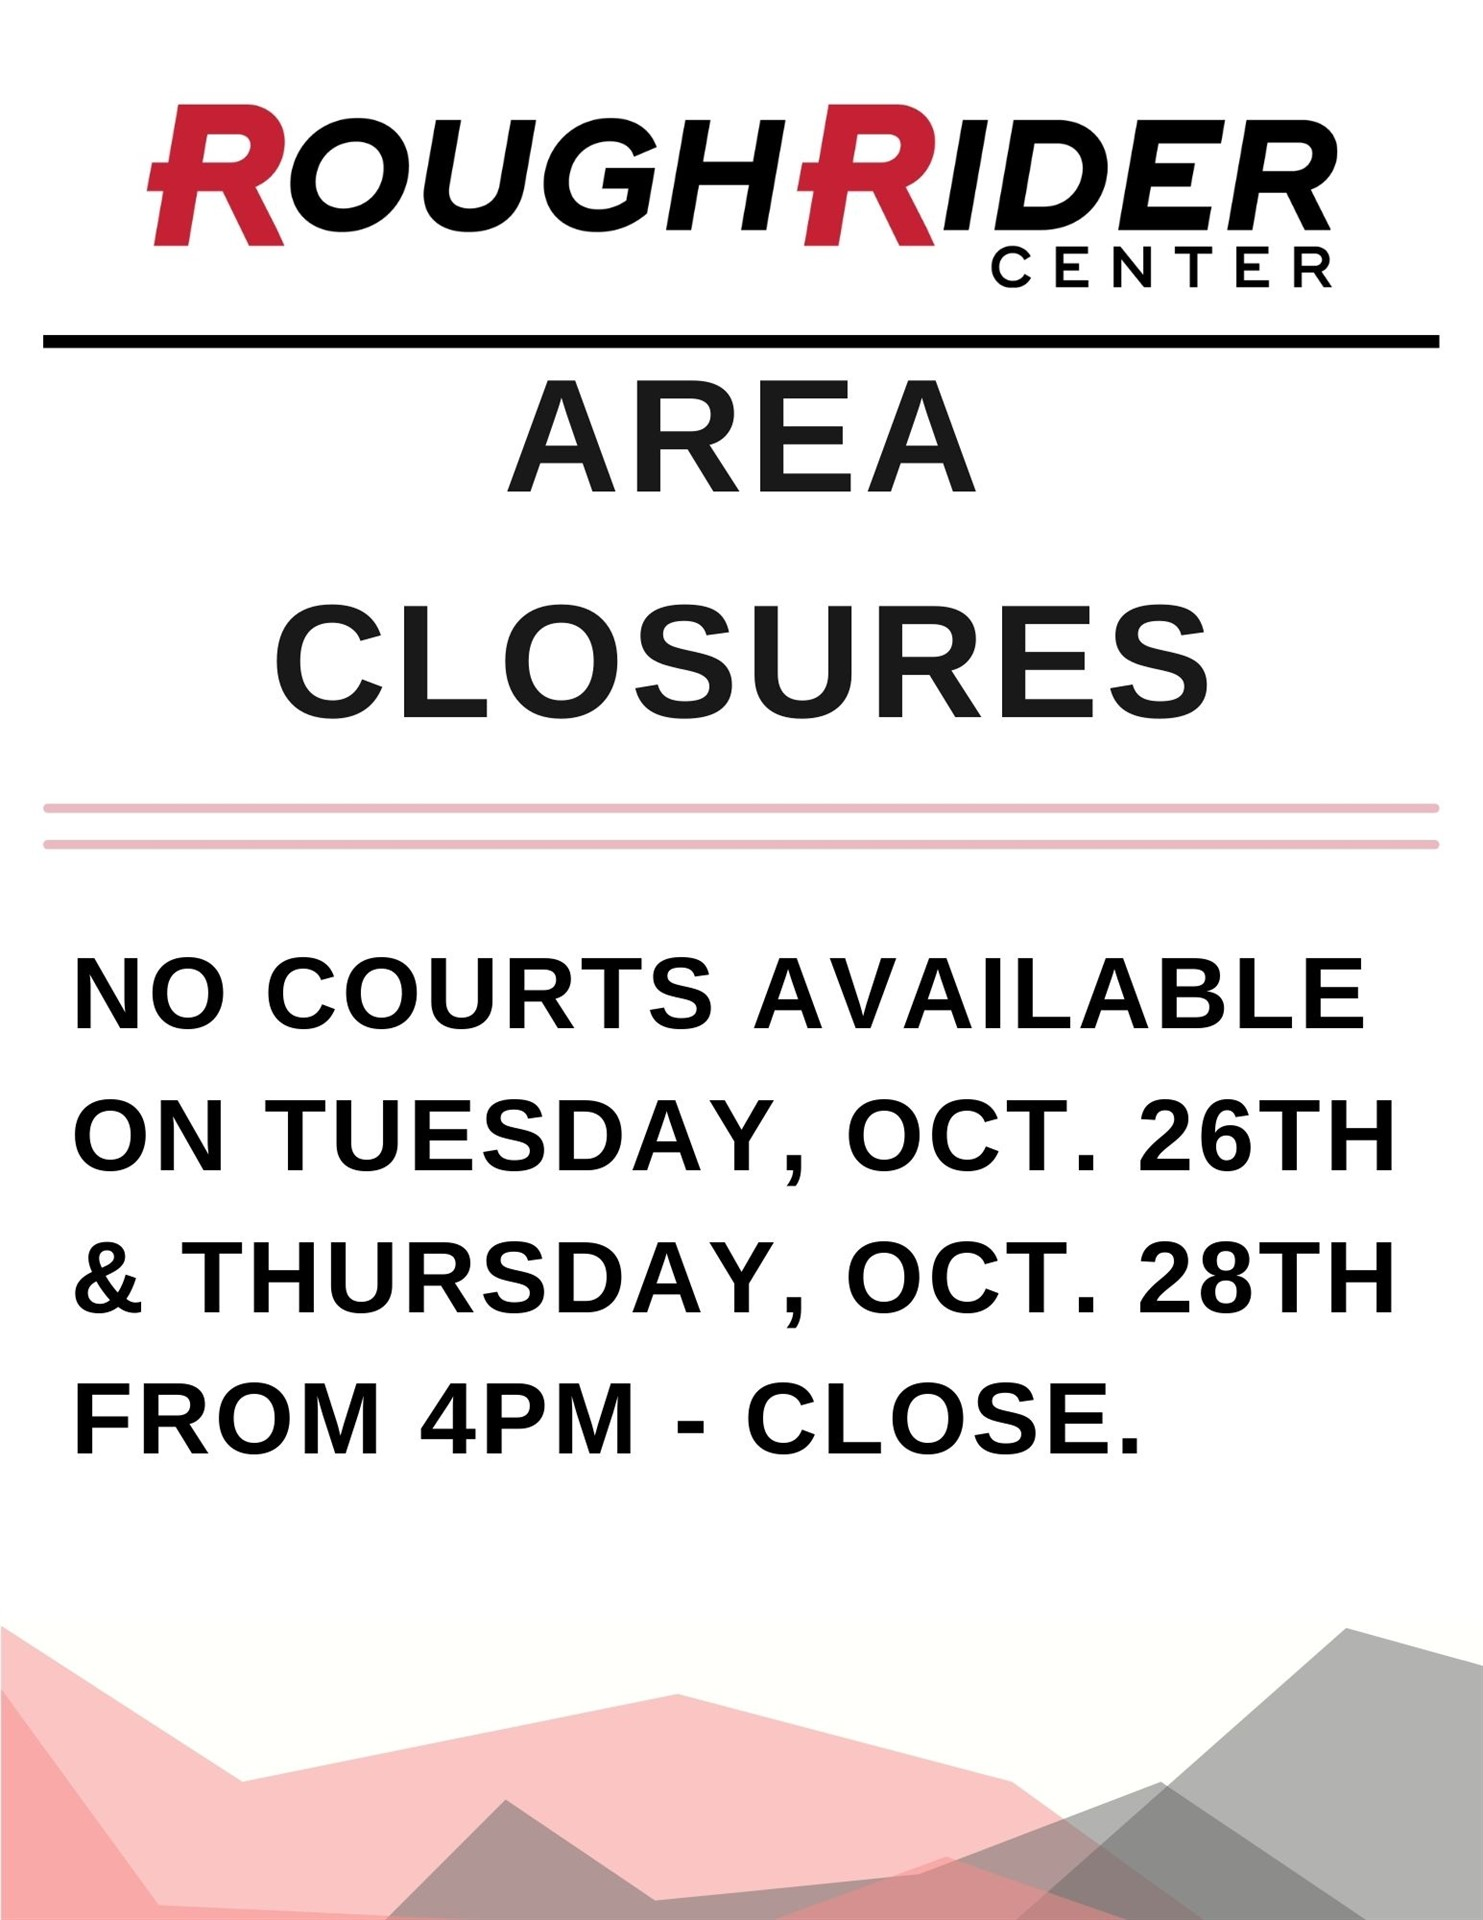 No courts available from 4pm-close on October 26th and 28th